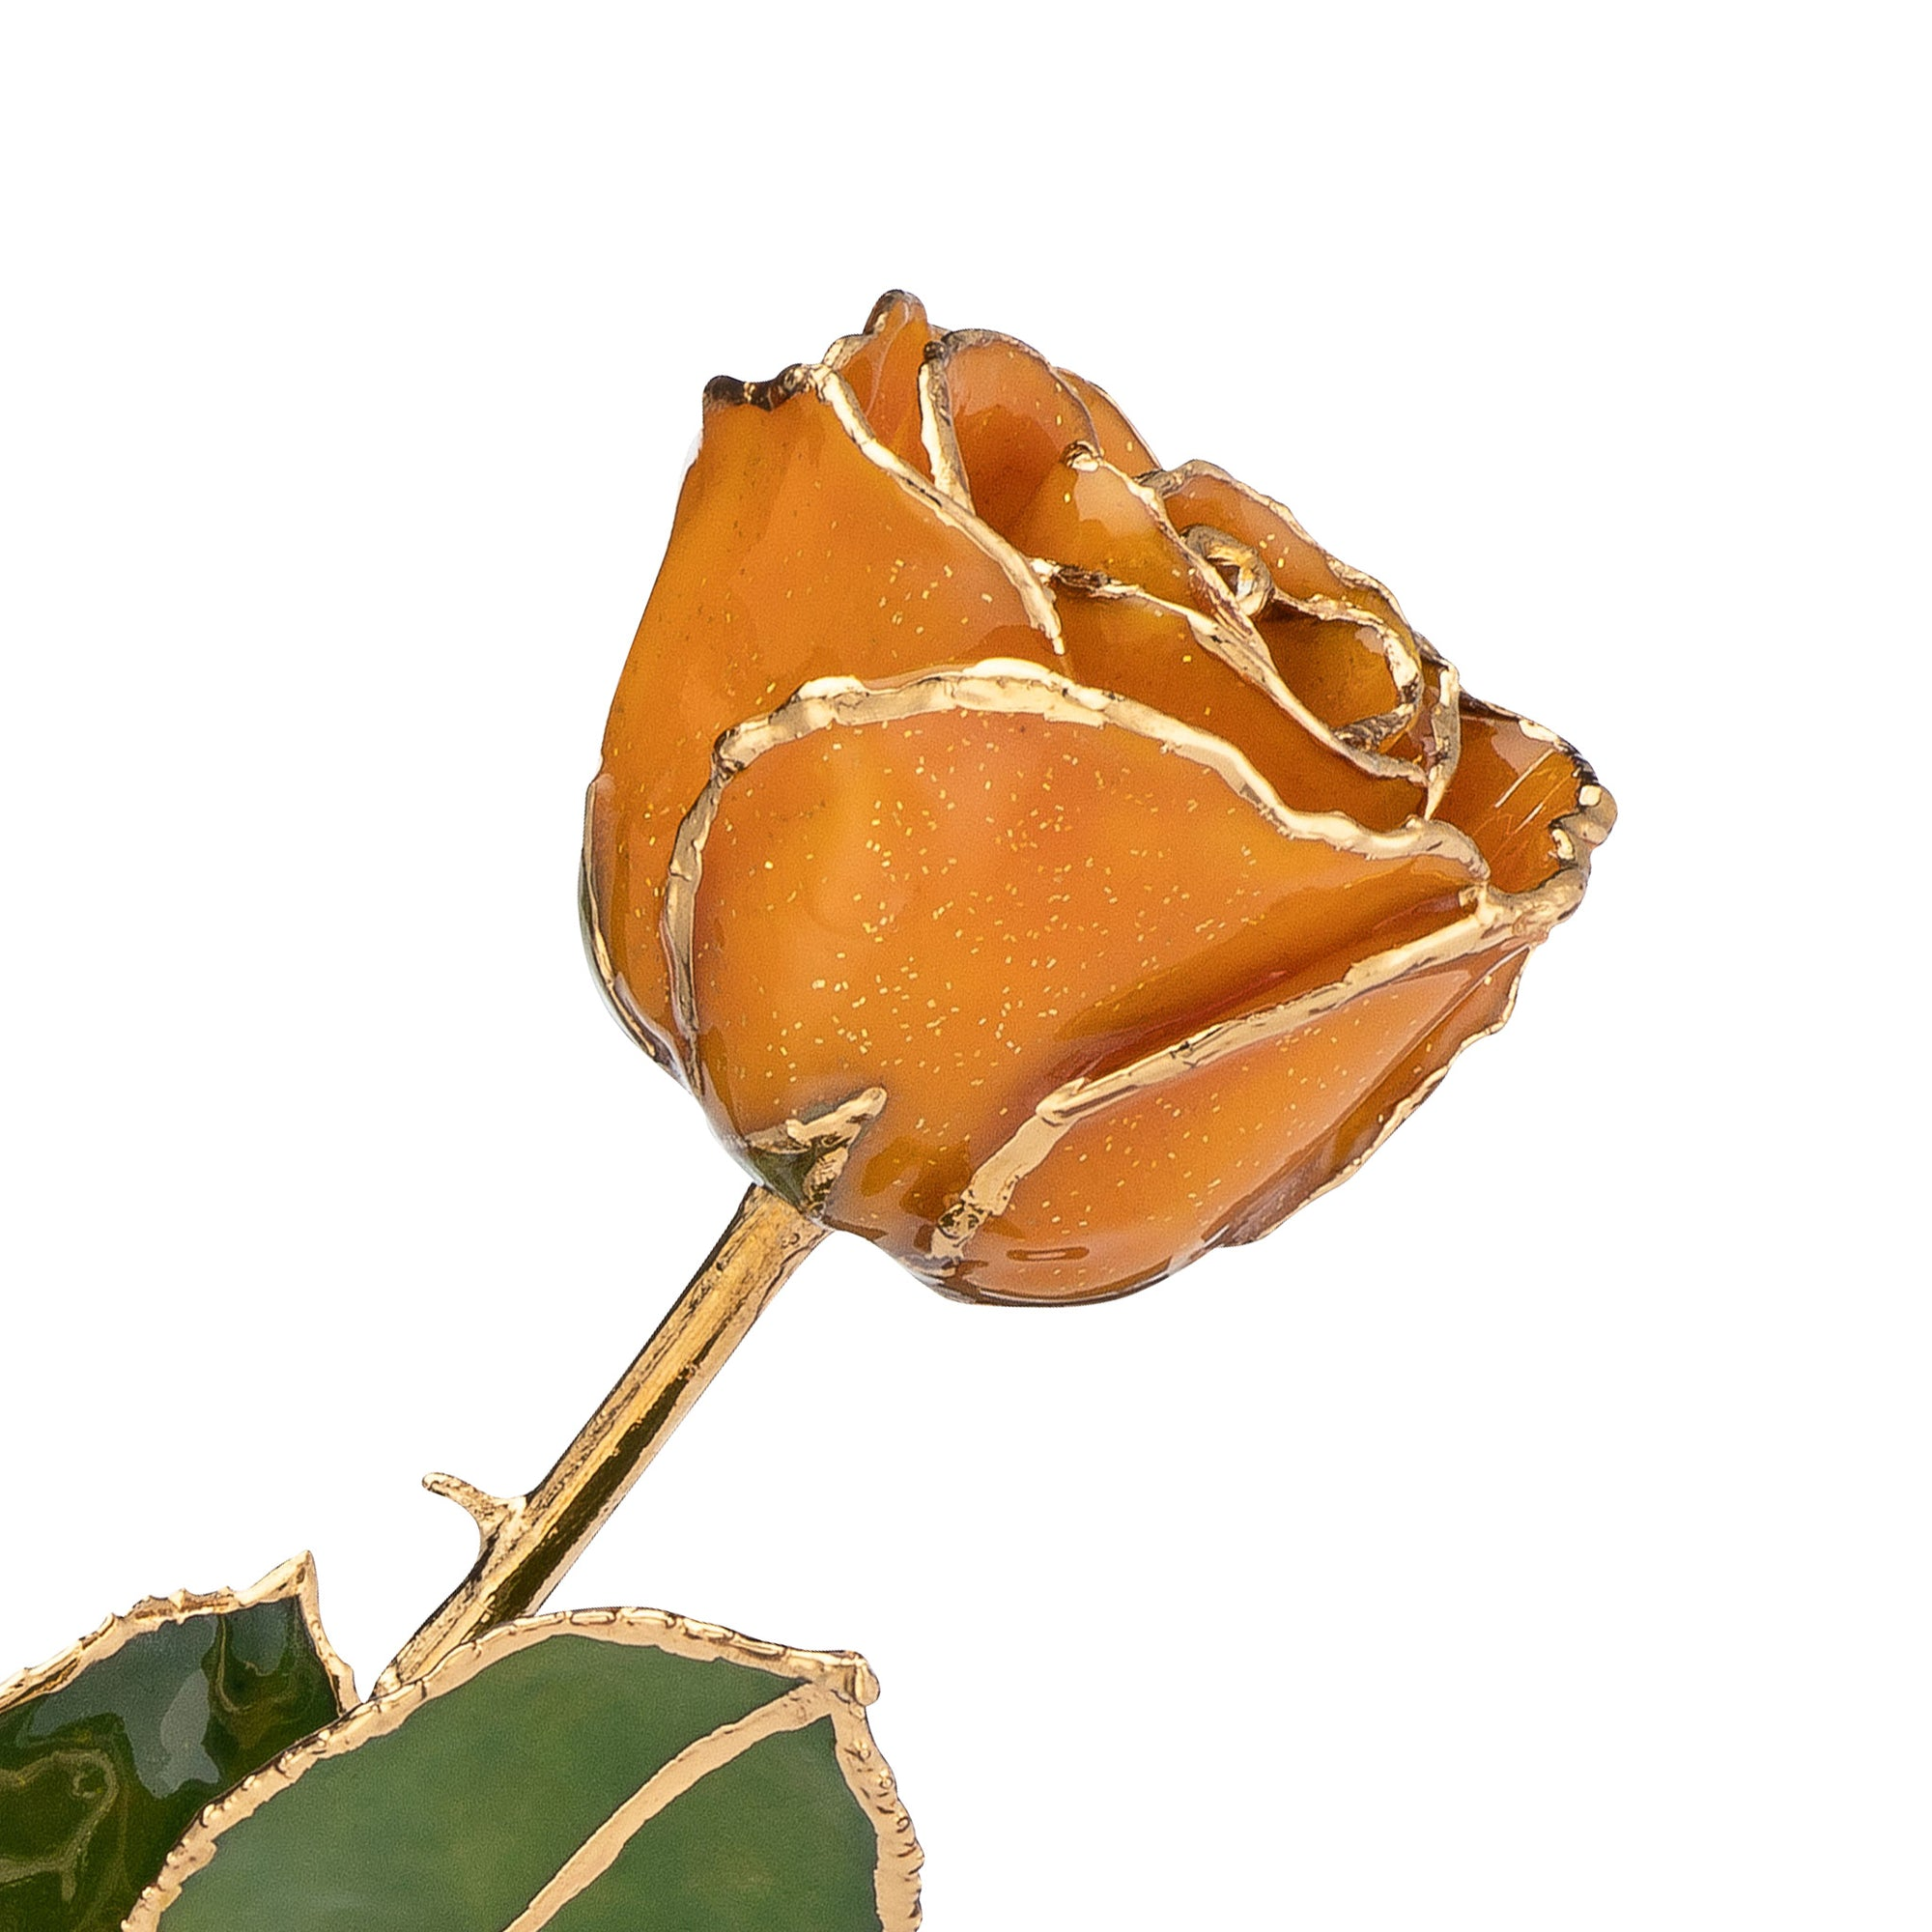 November Birthstone Rose - 24K Gold Trimmed Forever Rose with Topaz or Citrine (Amber color) Petals with Gold colored Suspended Sparkles. View of Stem, Leaves, and Rose Petals and Showing Detail of Gold Trim